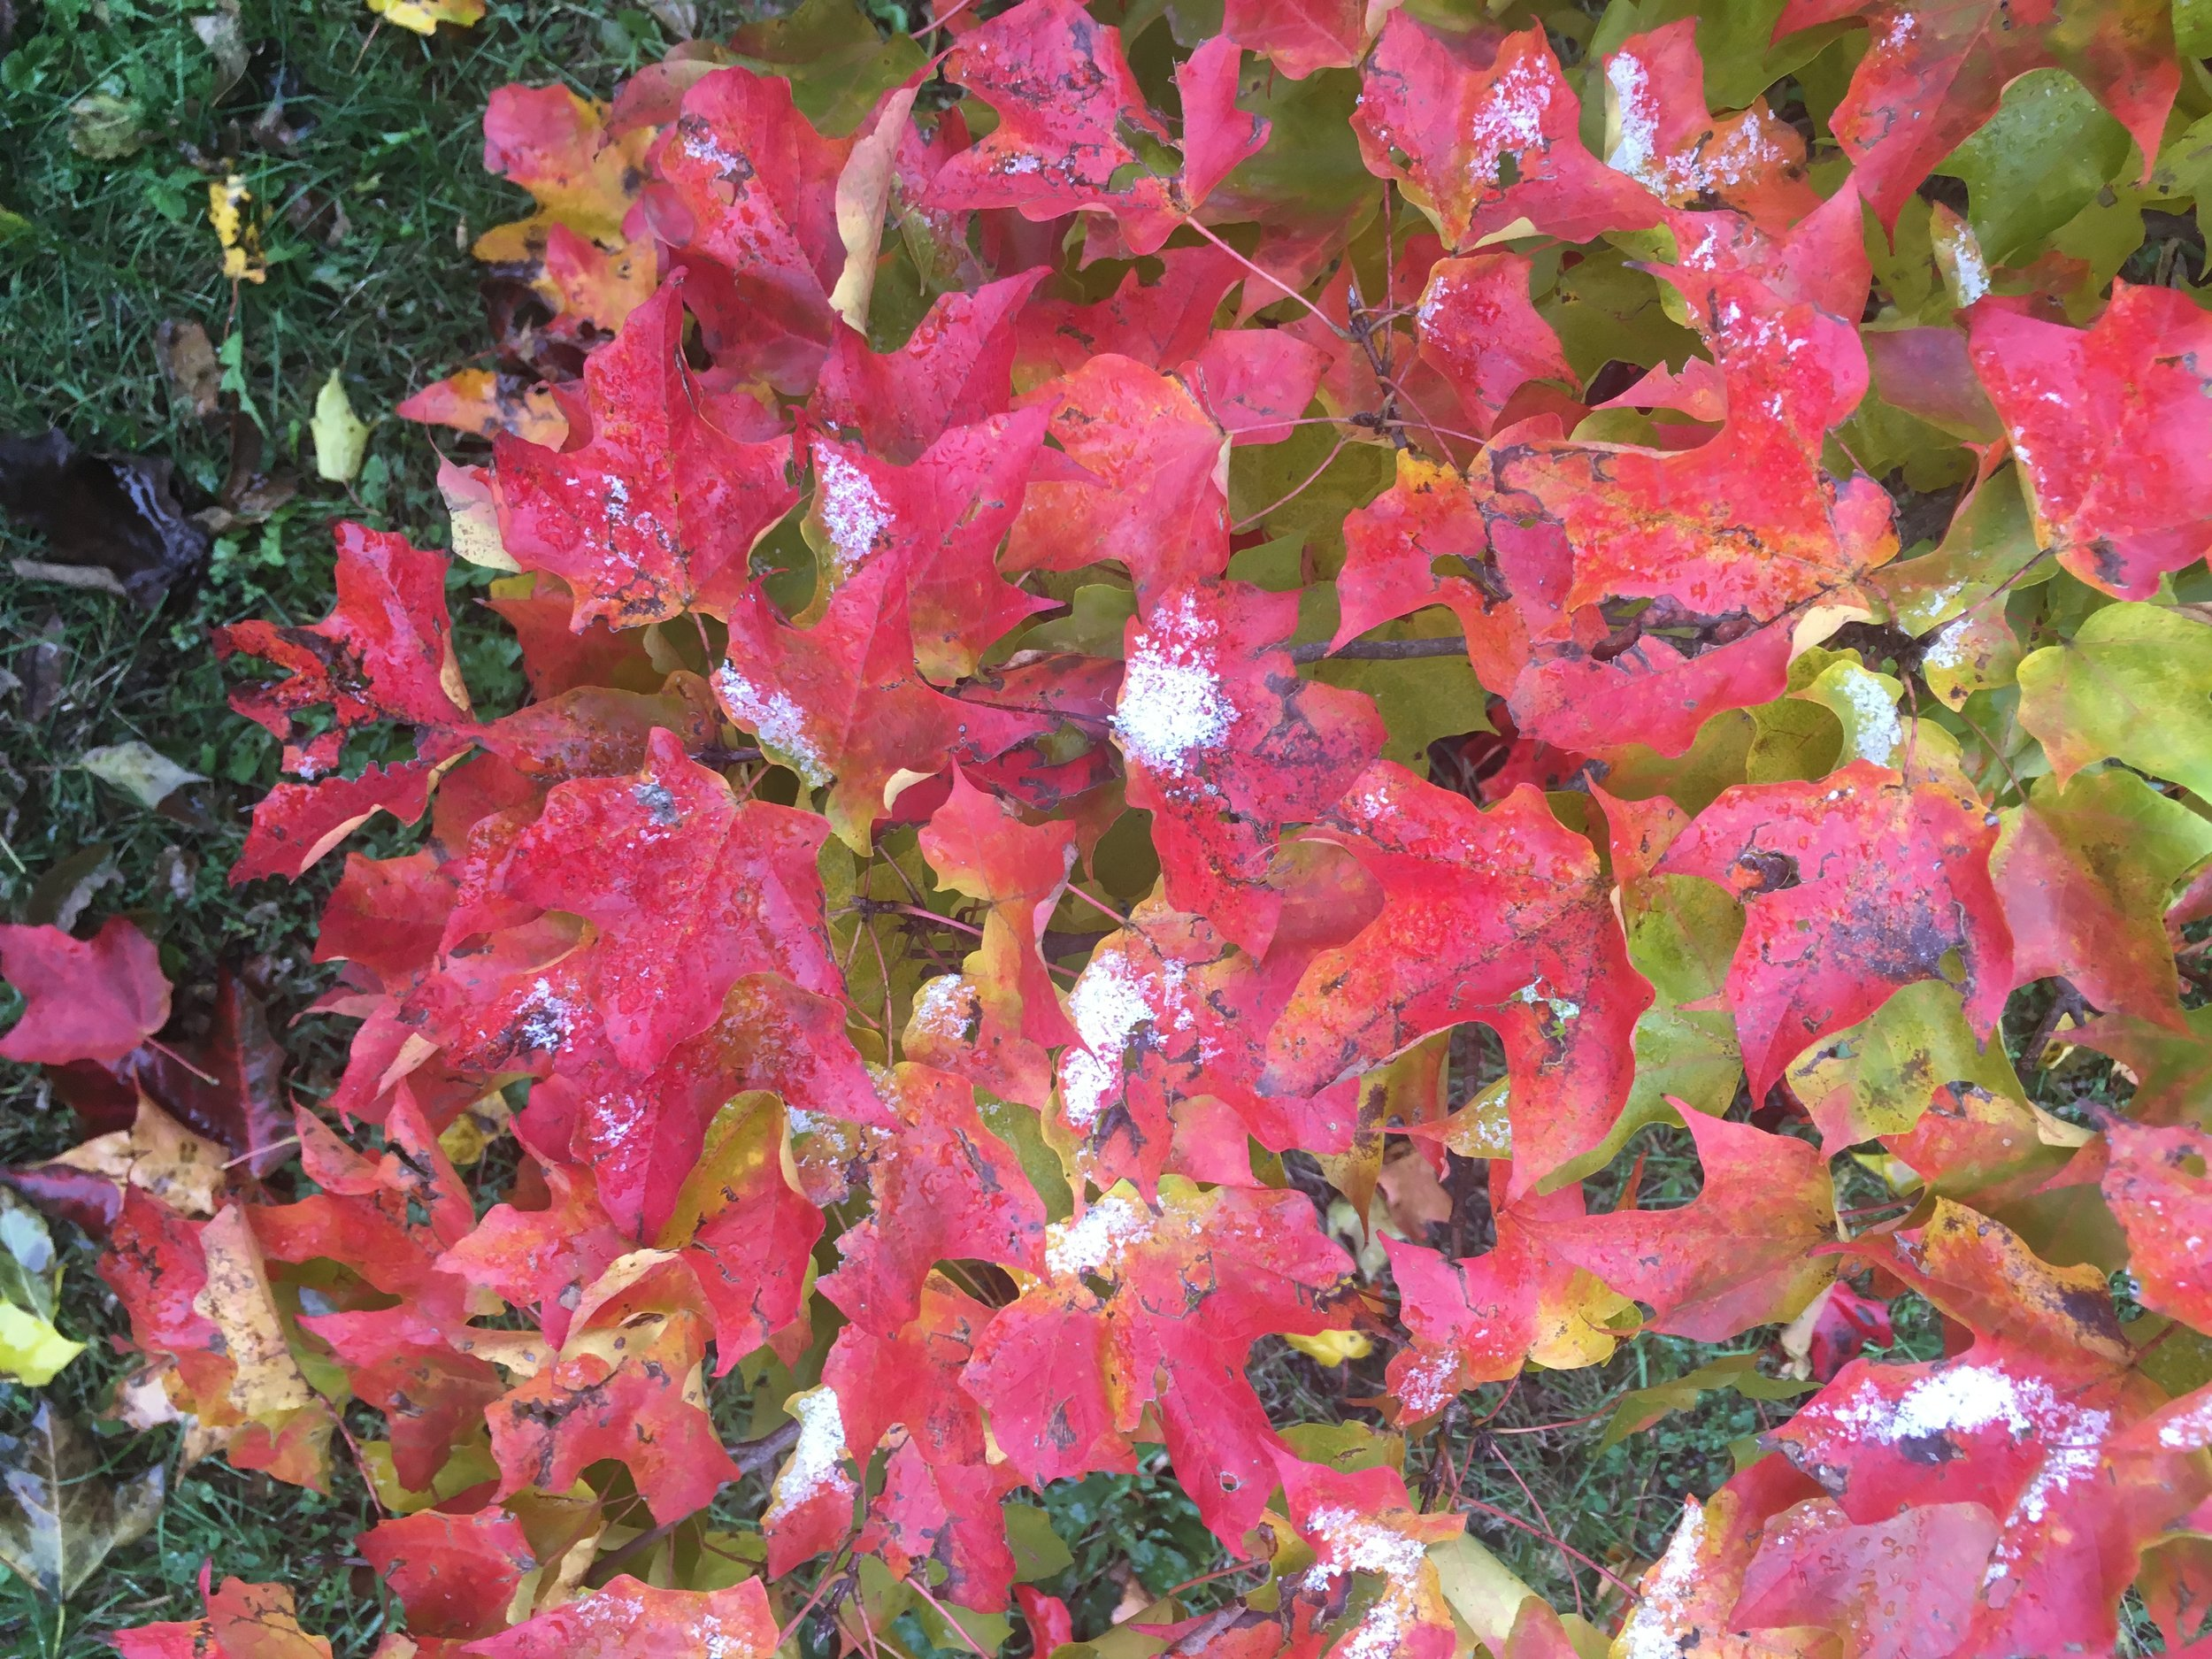 Fall maintains its beauty despite winter's early intrusion.